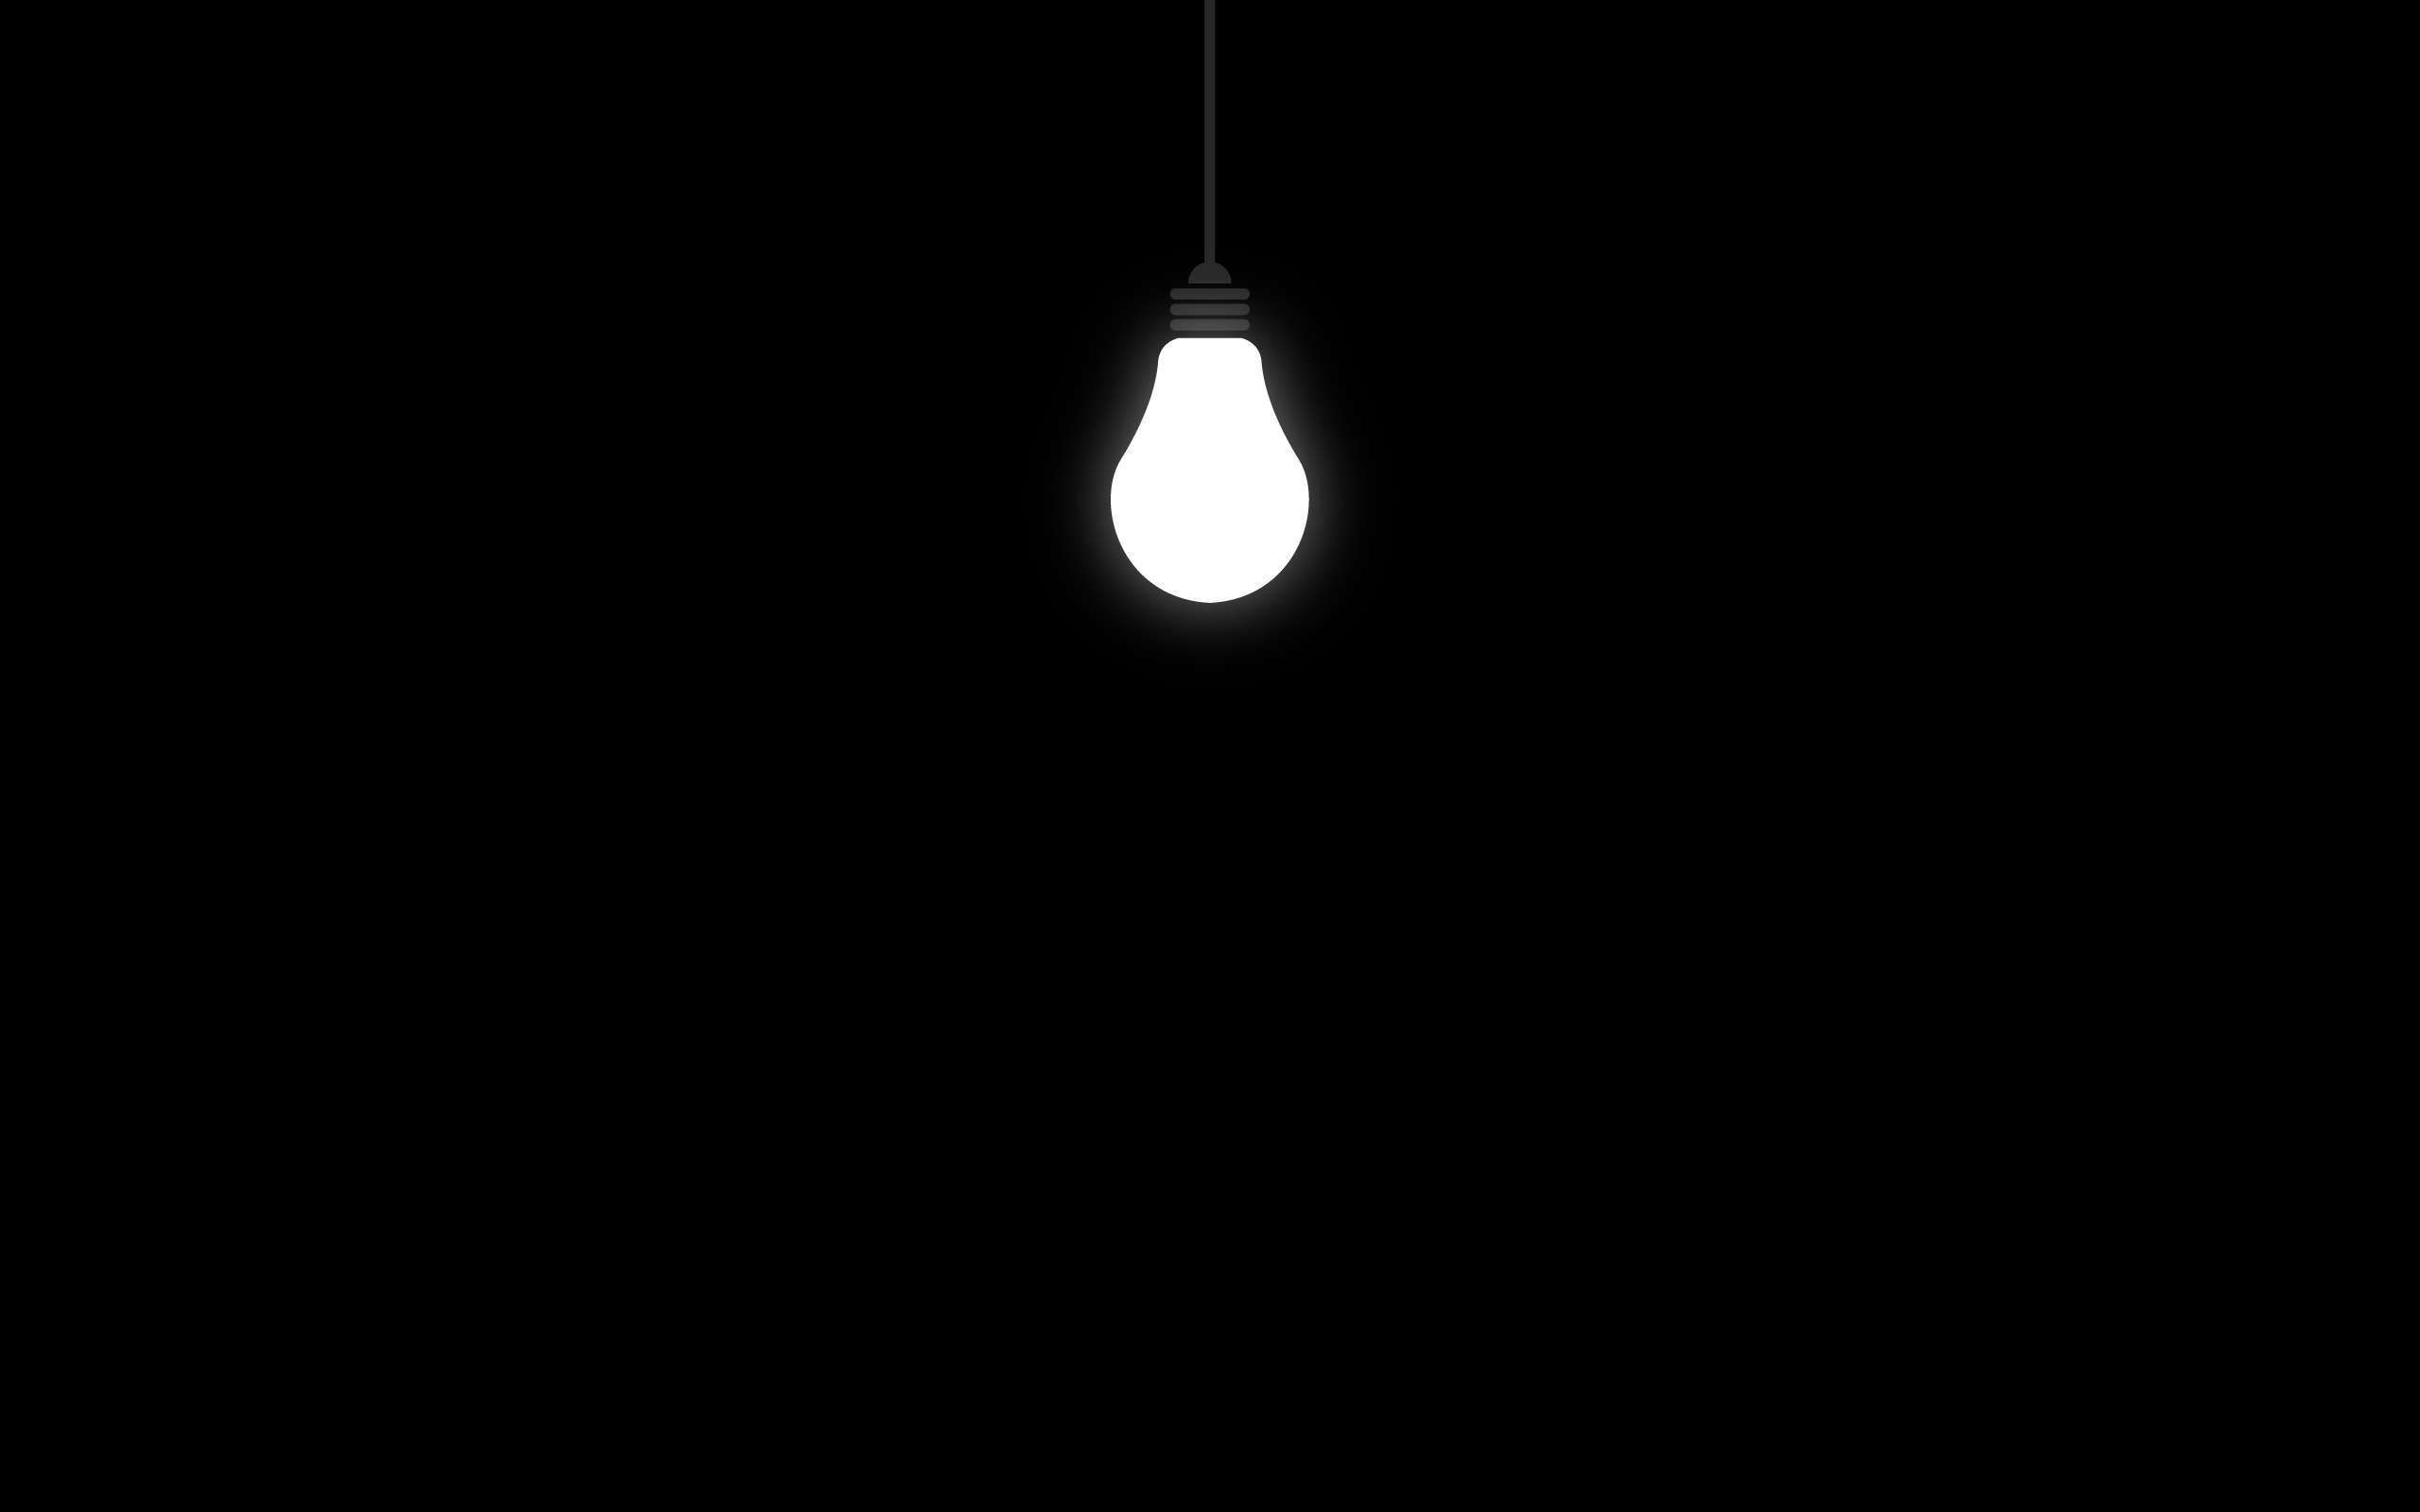 1000 images about lightbulb things on pinterest lightbulbs bulbs - Light Bulb Hd Wallpapers New Hd Images